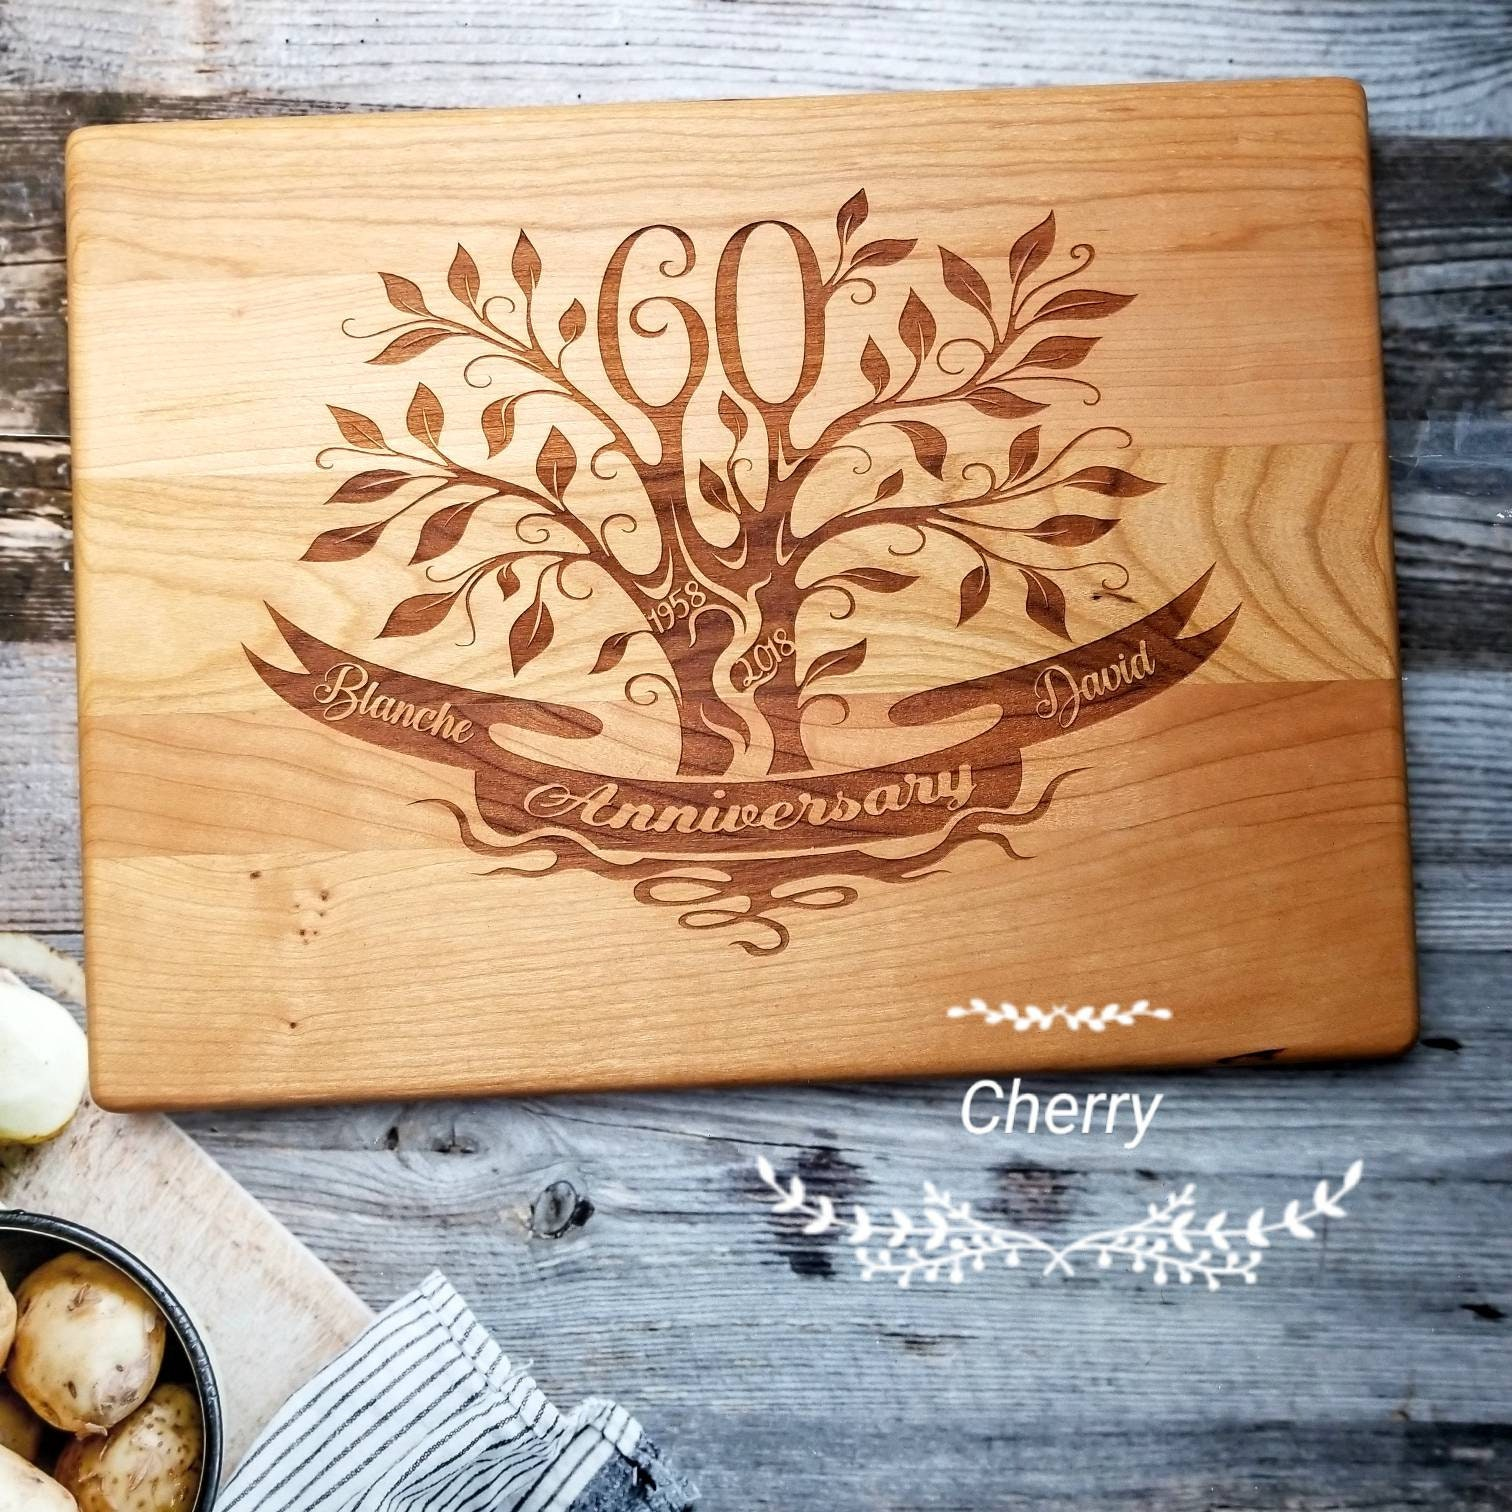 Gifts For 60th Wedding Anniversary: 60th Anniversary Gift 60th Wedding Anniversary Gift 60